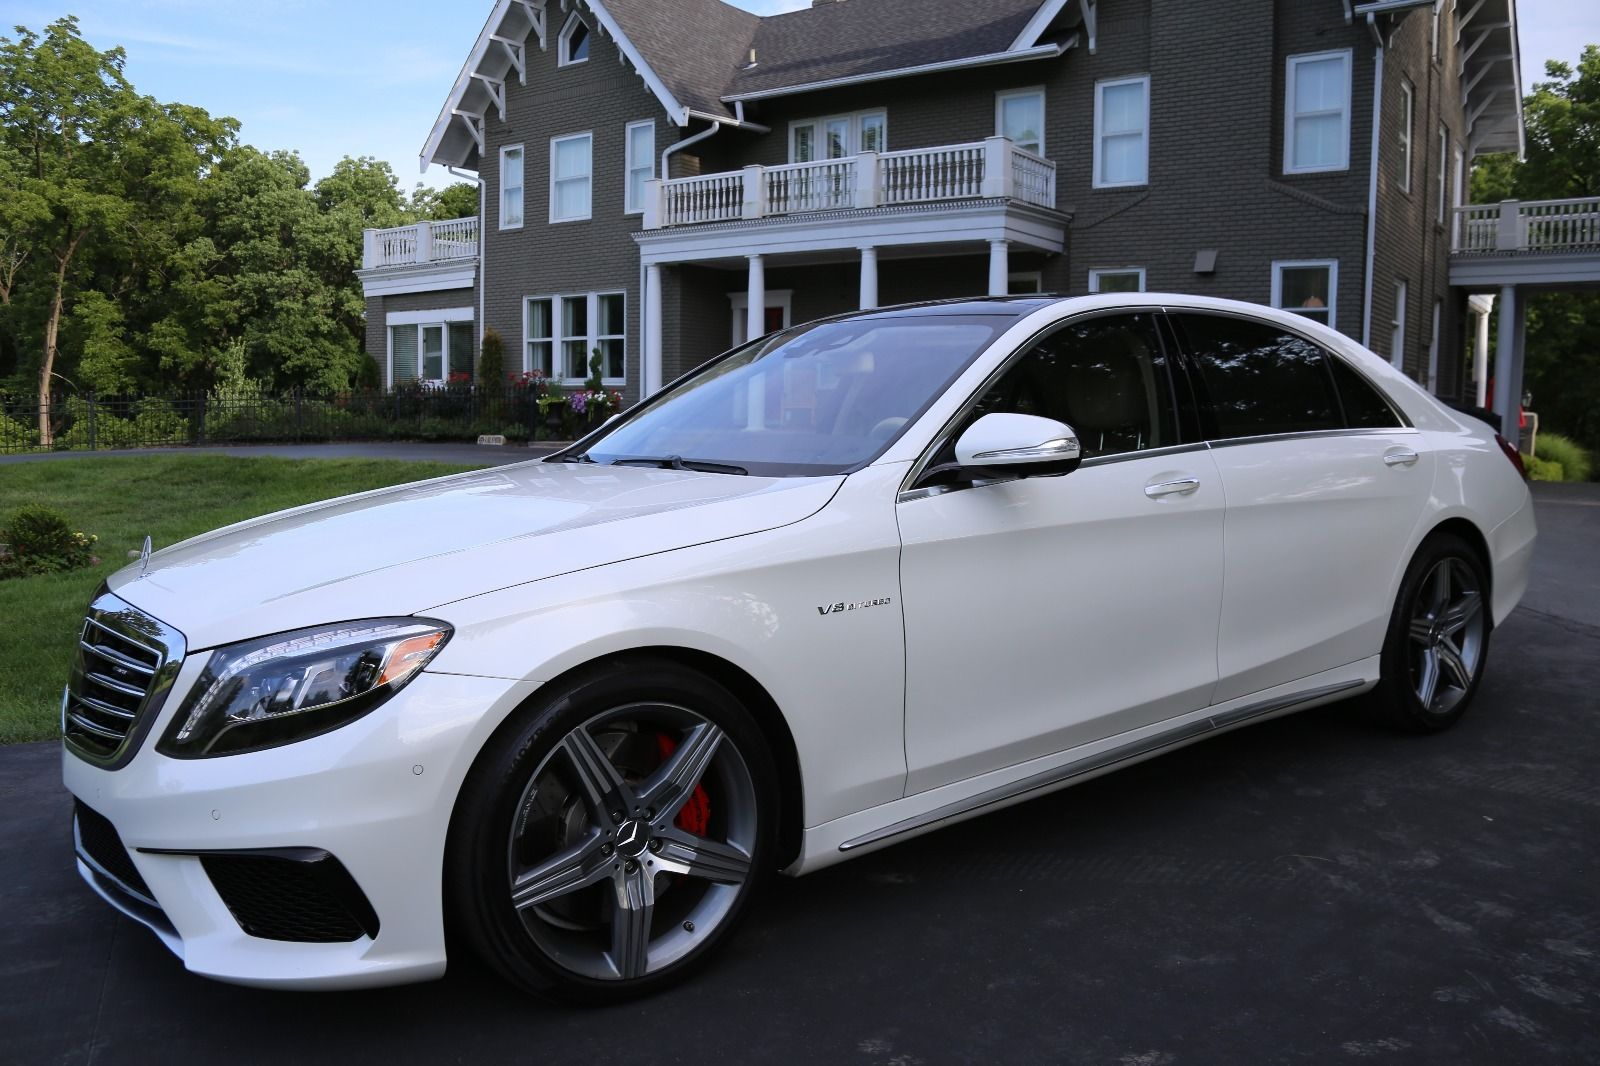 2015 mercedes benz w222 s63 amg v8 biturbo benztuning for Mercedes benz s63 amg biturbo